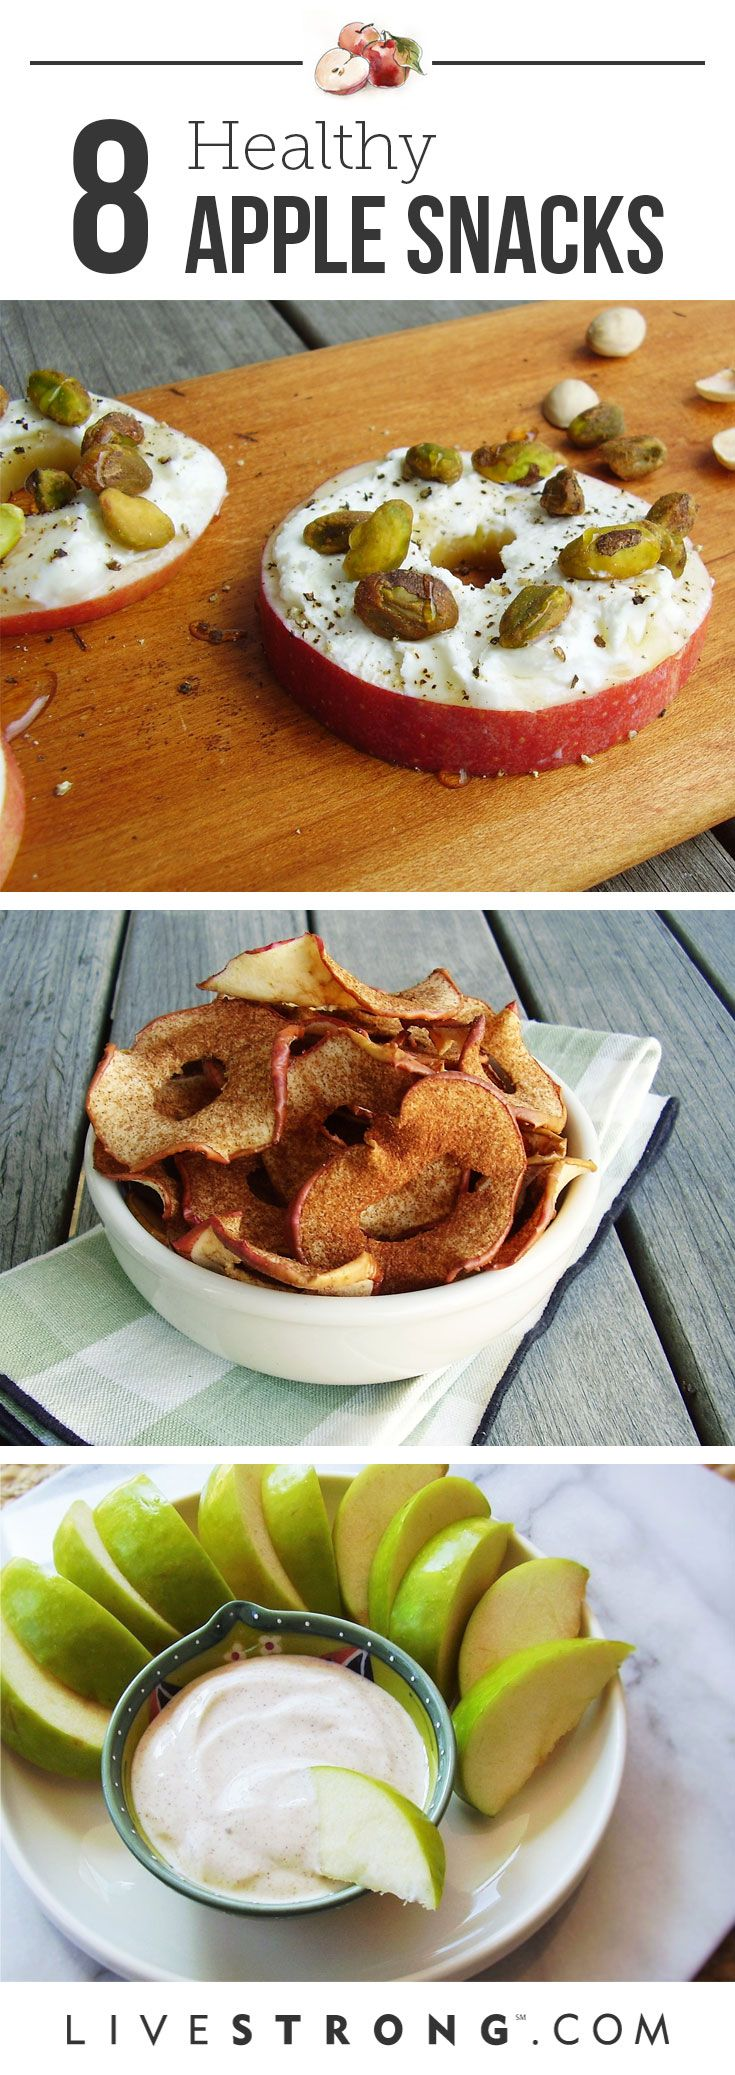 Keeping it healthy this fall? These apple snacks should help =)